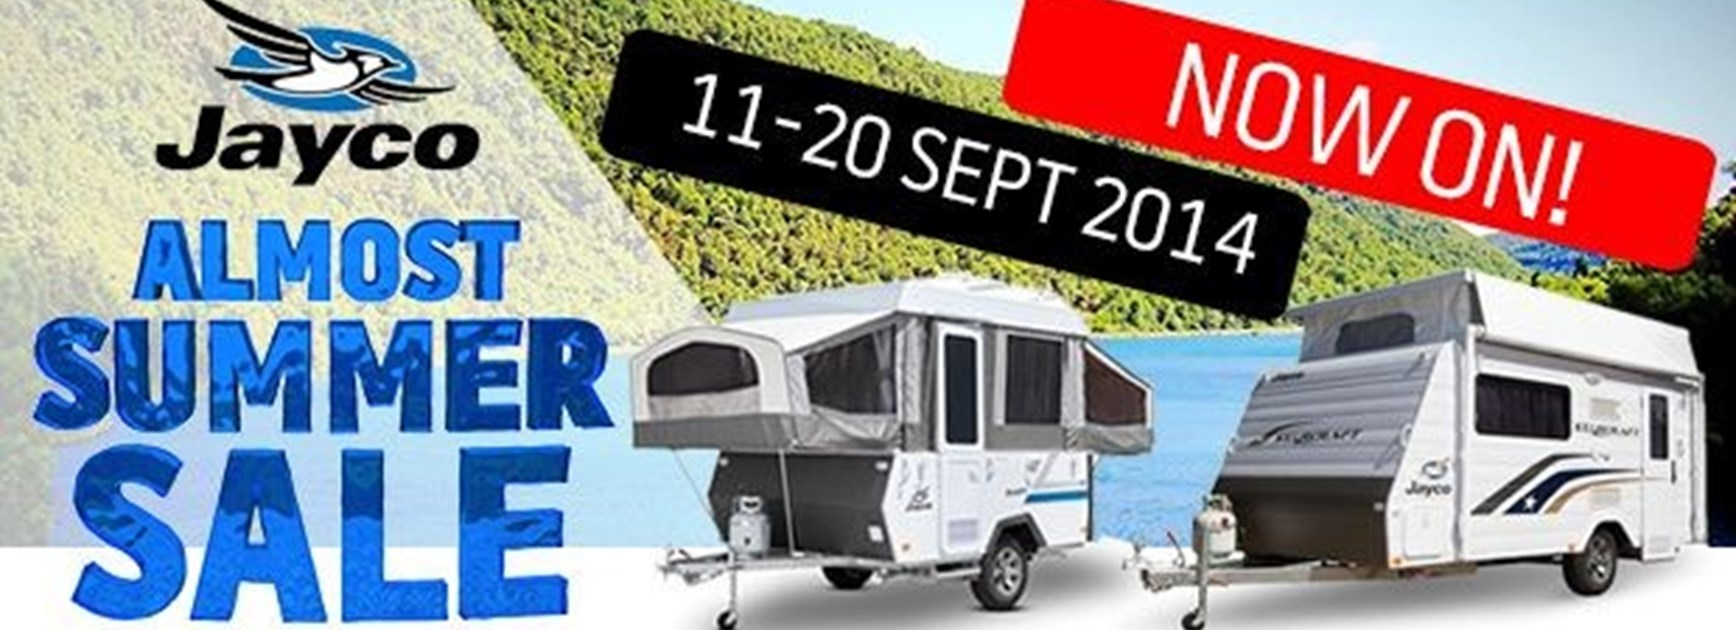 Jayco's Almost Summer Sale